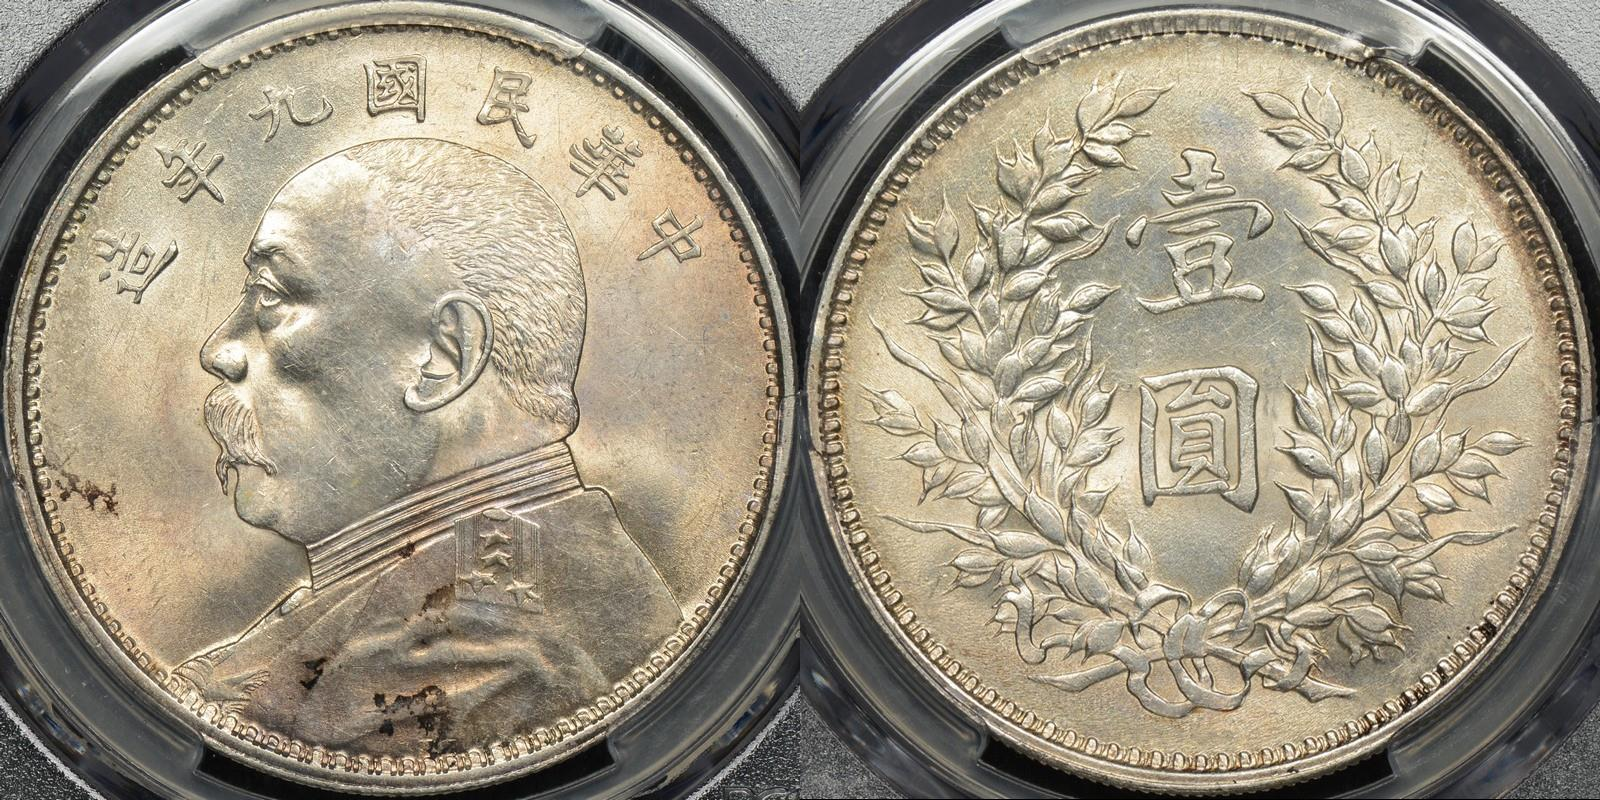 China 1920 dollar 1 y 329.6 lm 77 PCGS au58 about Uncirculated